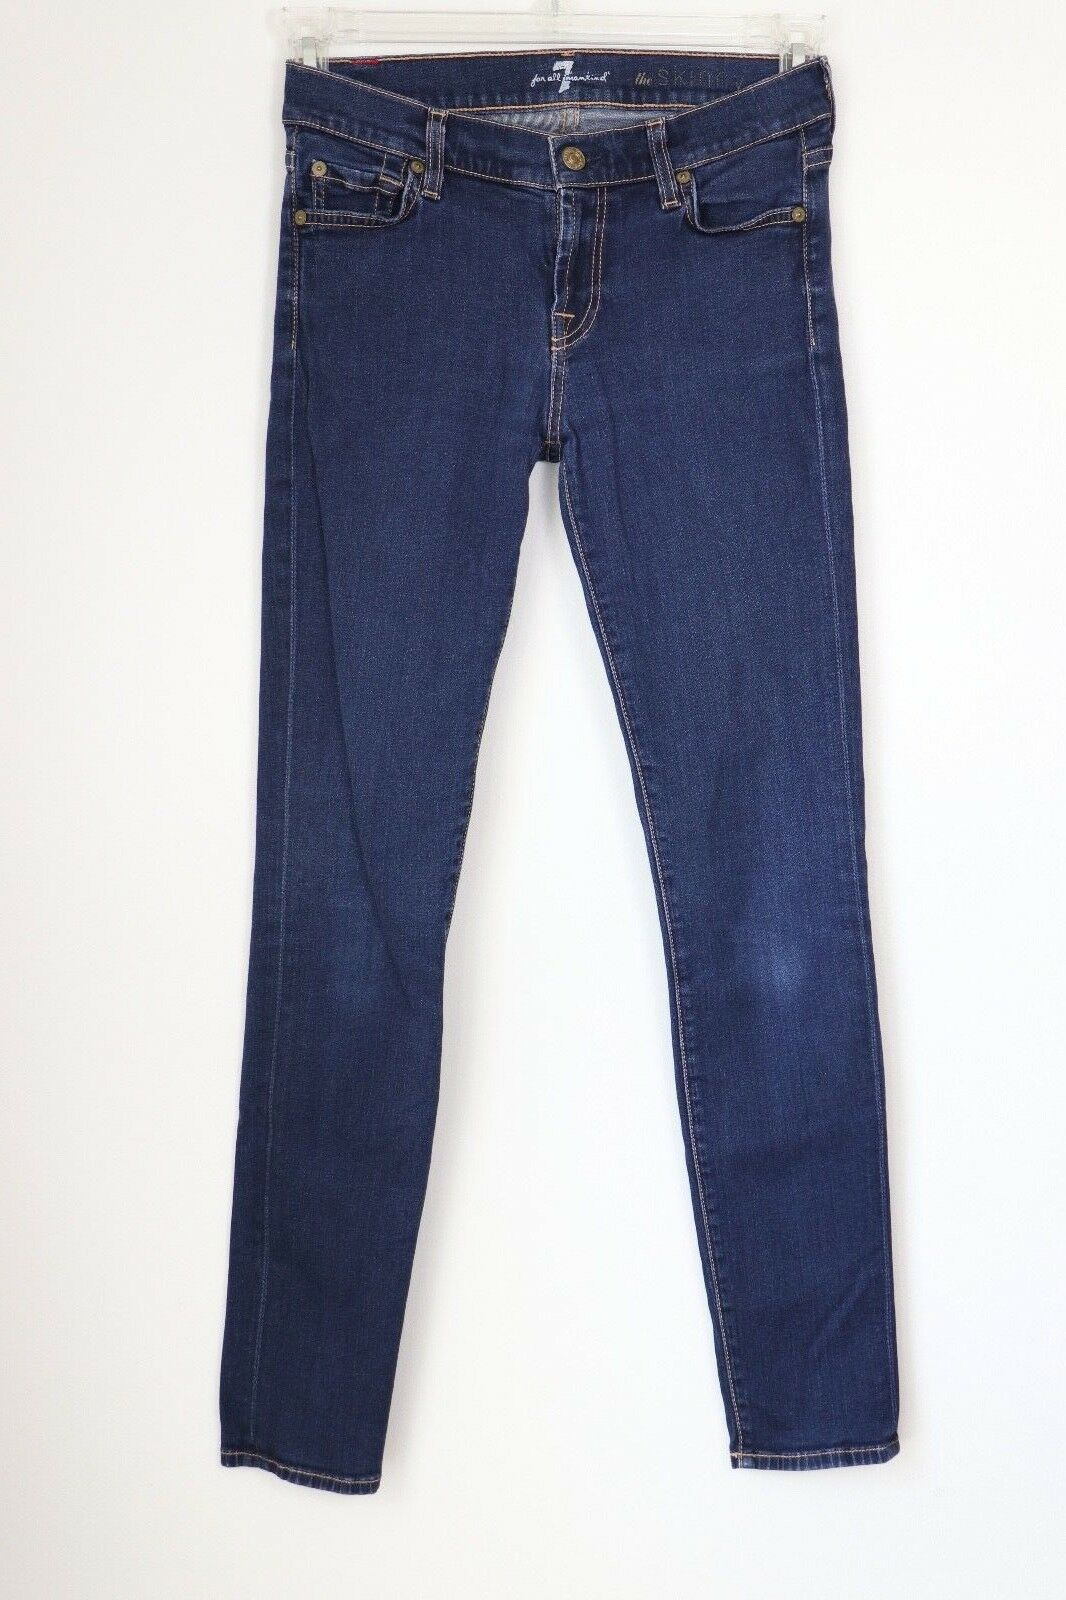 7 For All Mankind The Skinny Jean - bluee Size 26  Retail Price139.99